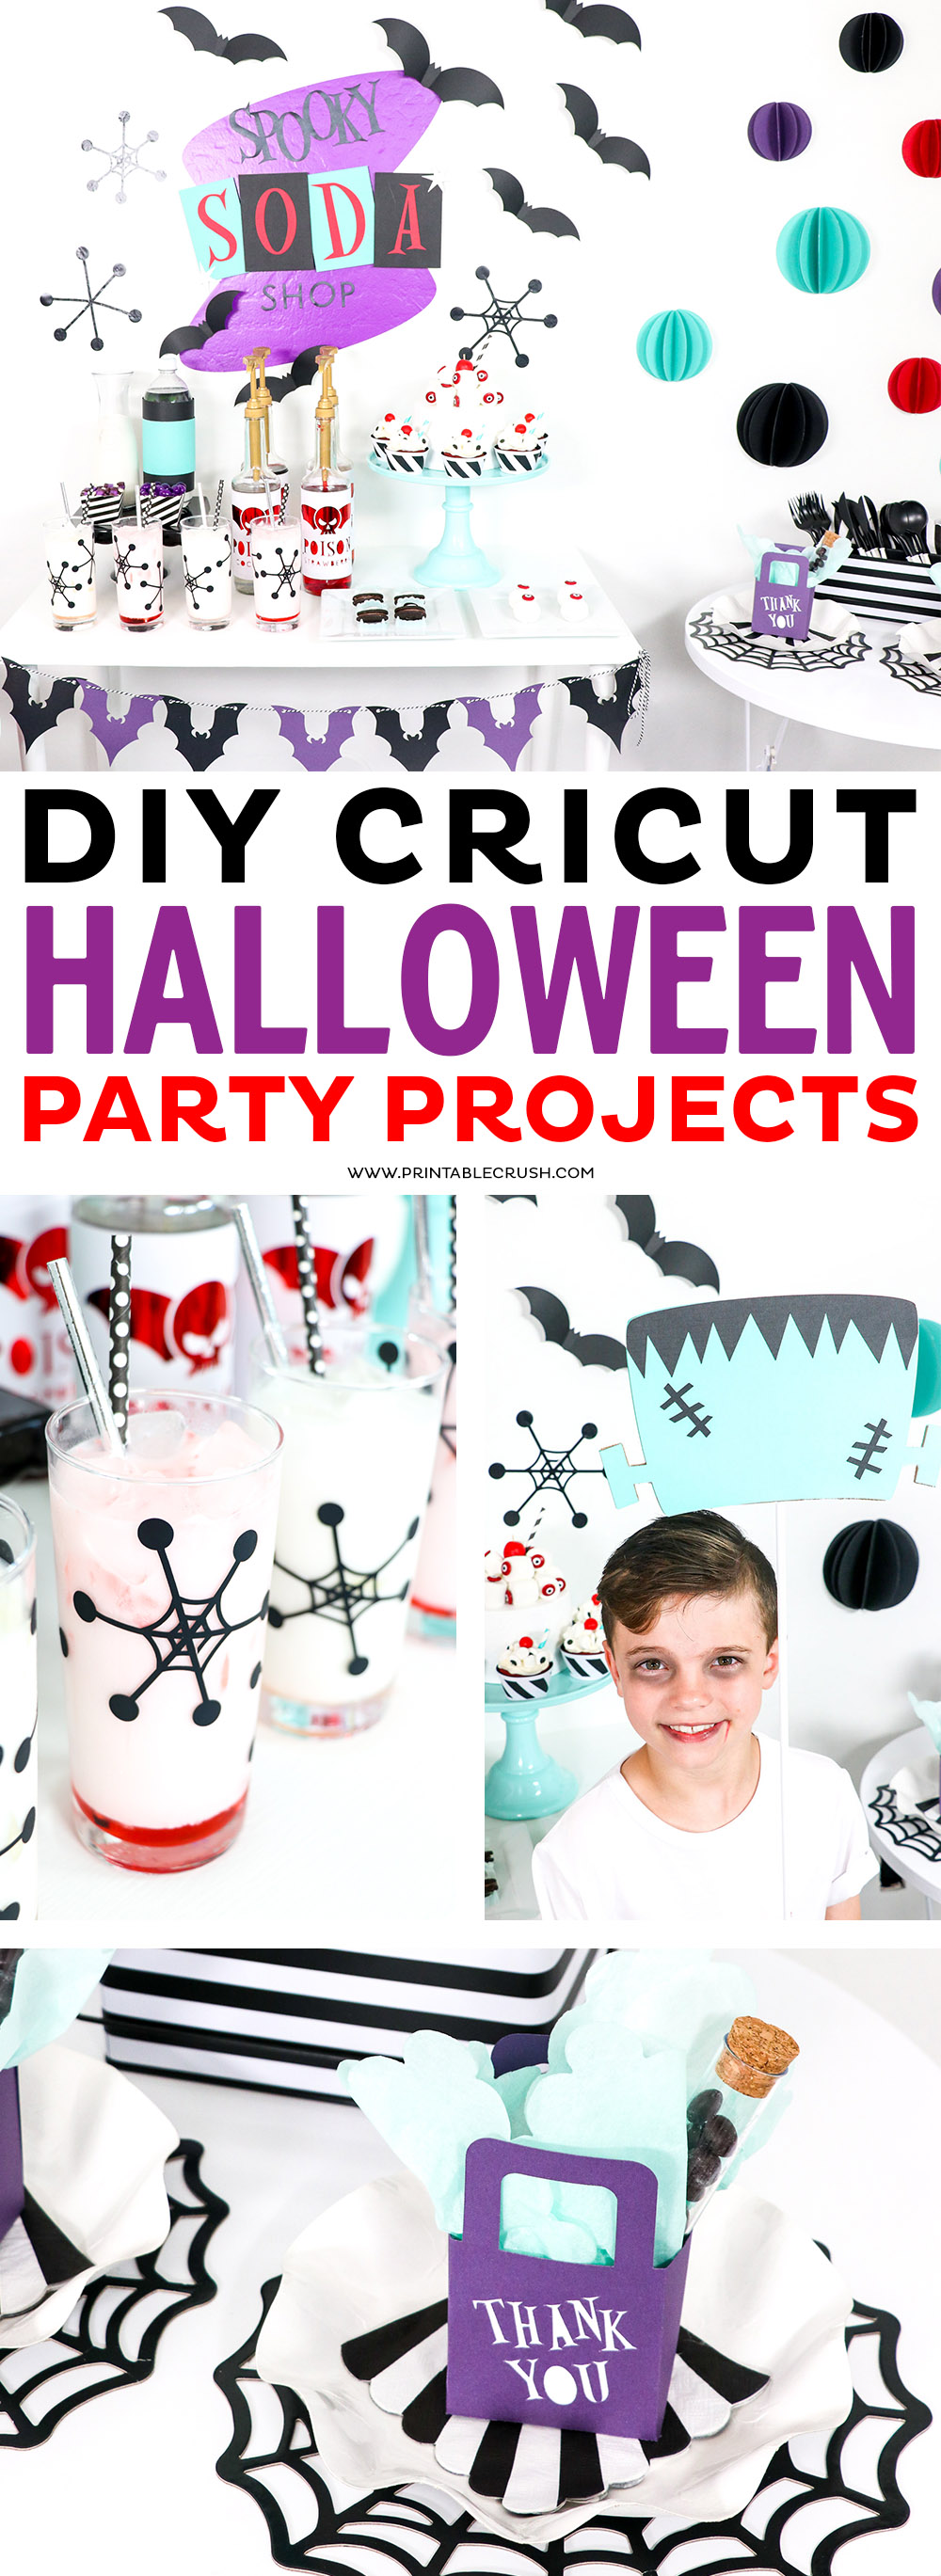 These DIY Cricut Halloween Party Projects are ready to go in Cricut Design Space. Just click on the link to the project and select MAKE IT or you can customize it!